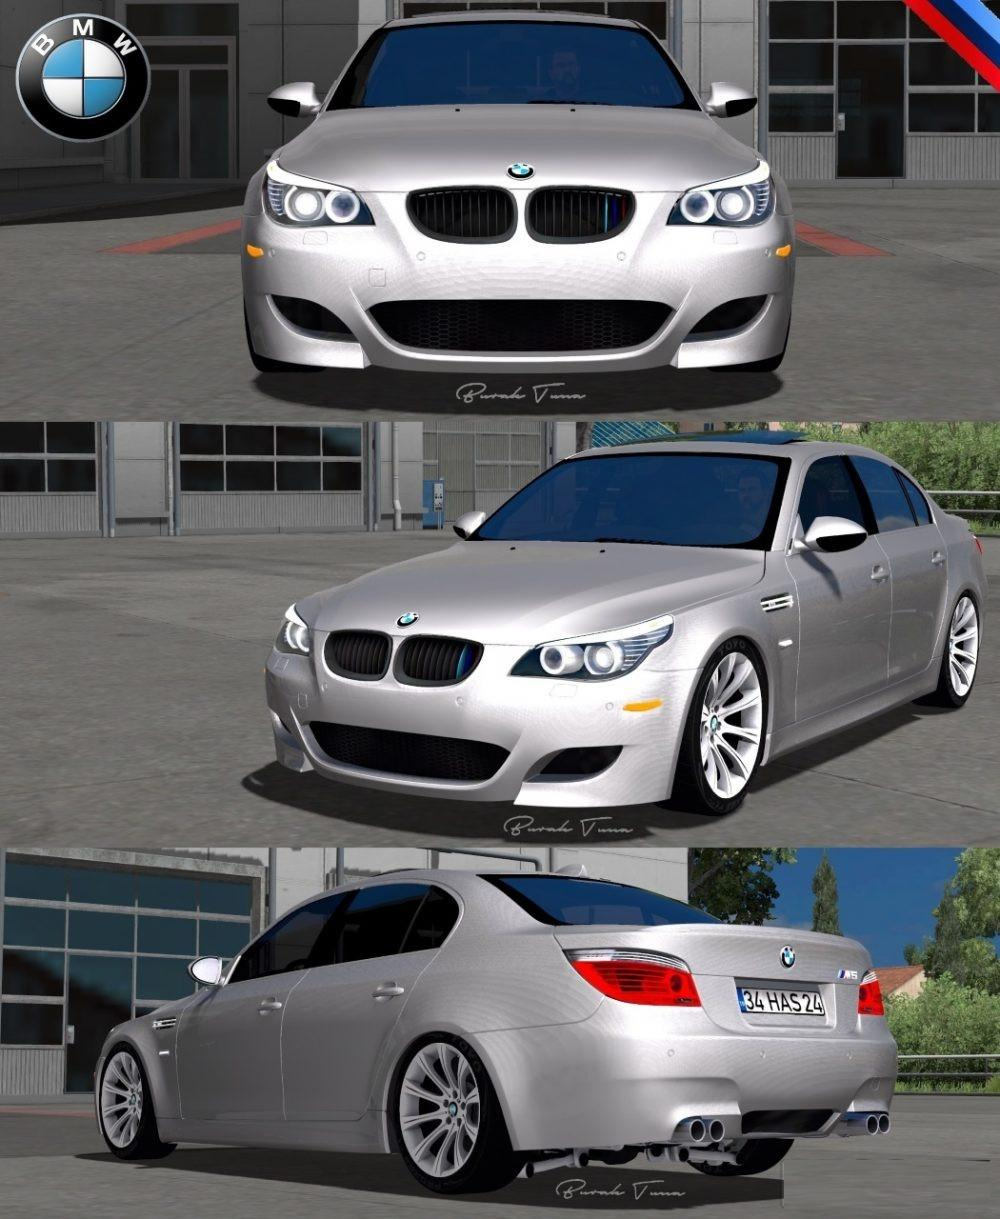 Boosted Performance V 2 0 Installed Tuned By Jms Racing: BMW 5 SERIES E60 PACK V2.0 CAR MOD